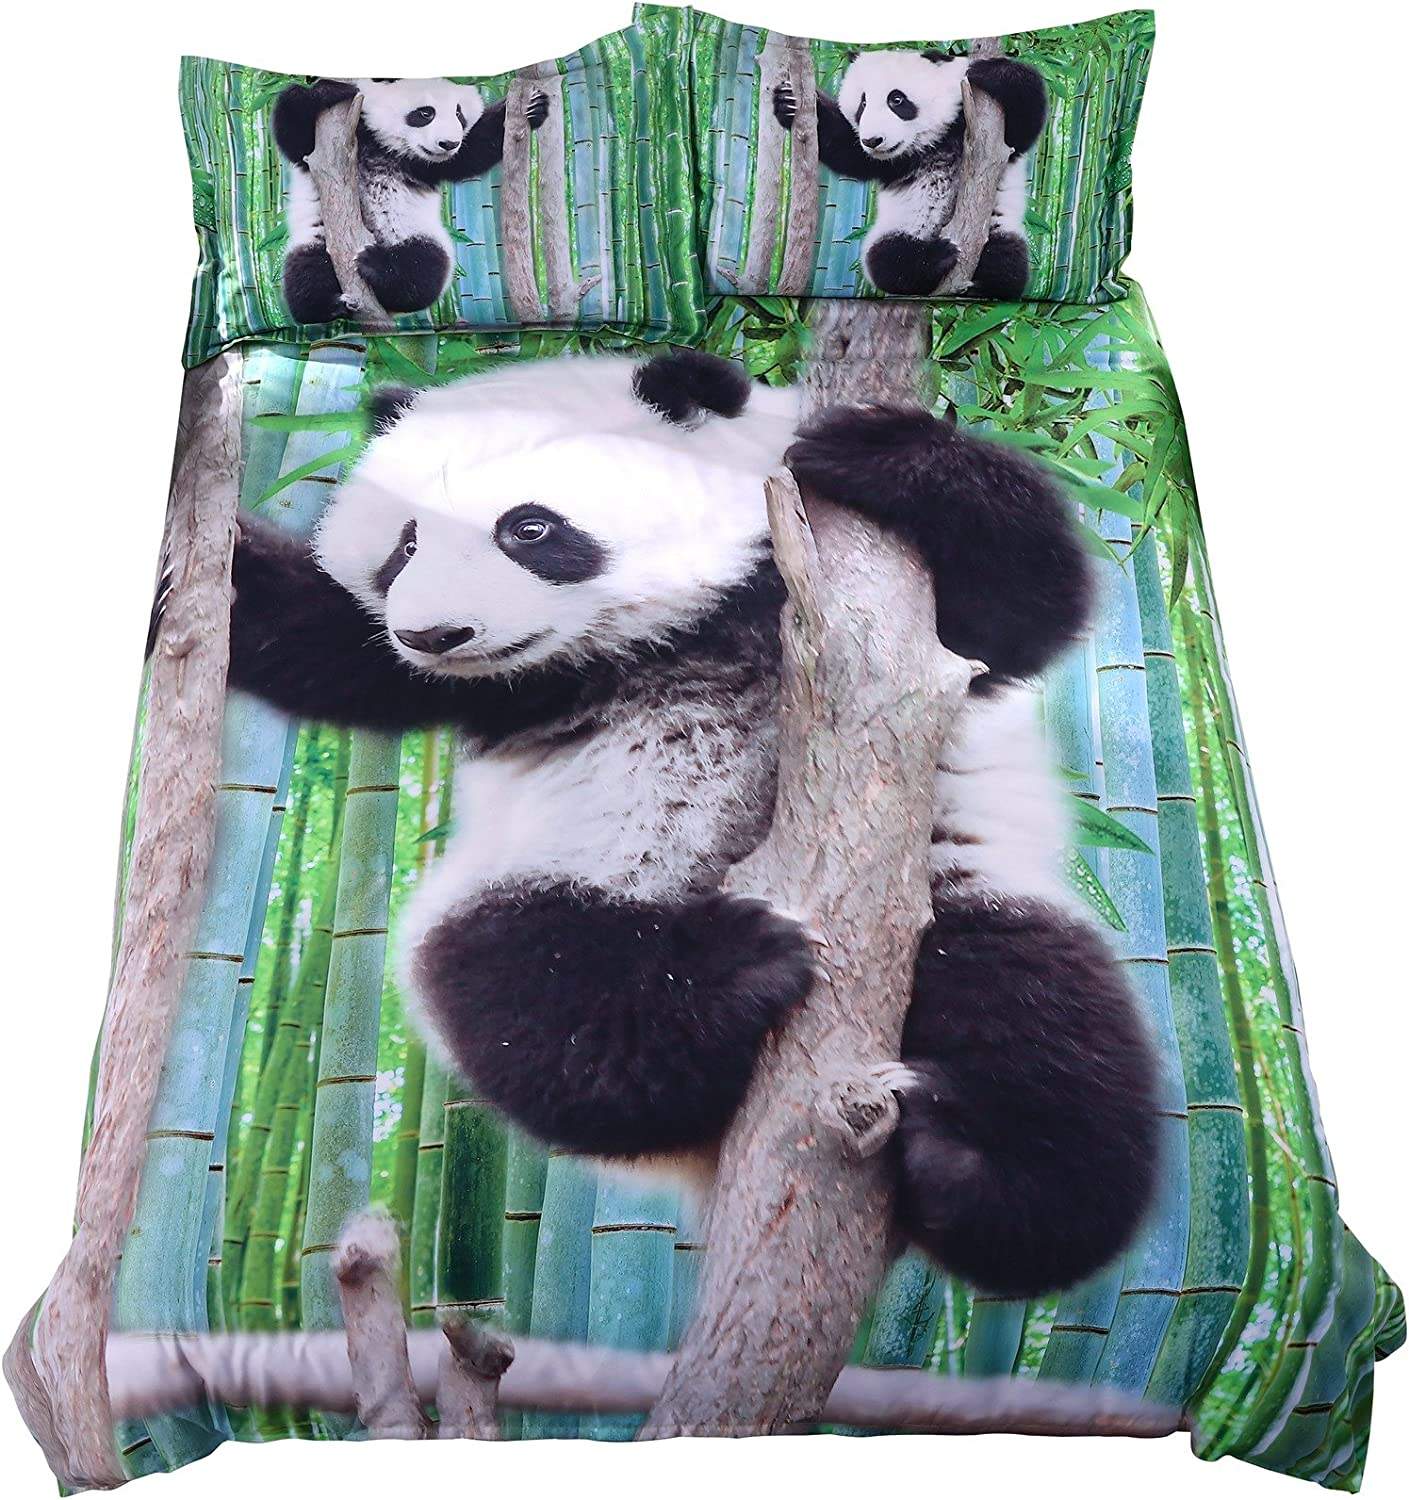 90x90 Himadoya Panda Duvet Cover Cartoon Animal Bedding Set Child Microfiber Cute Panda Head Soft Bedding Set Comforter Cover with Zipper 1 Quilt Cover 2 Pillowcases Queen